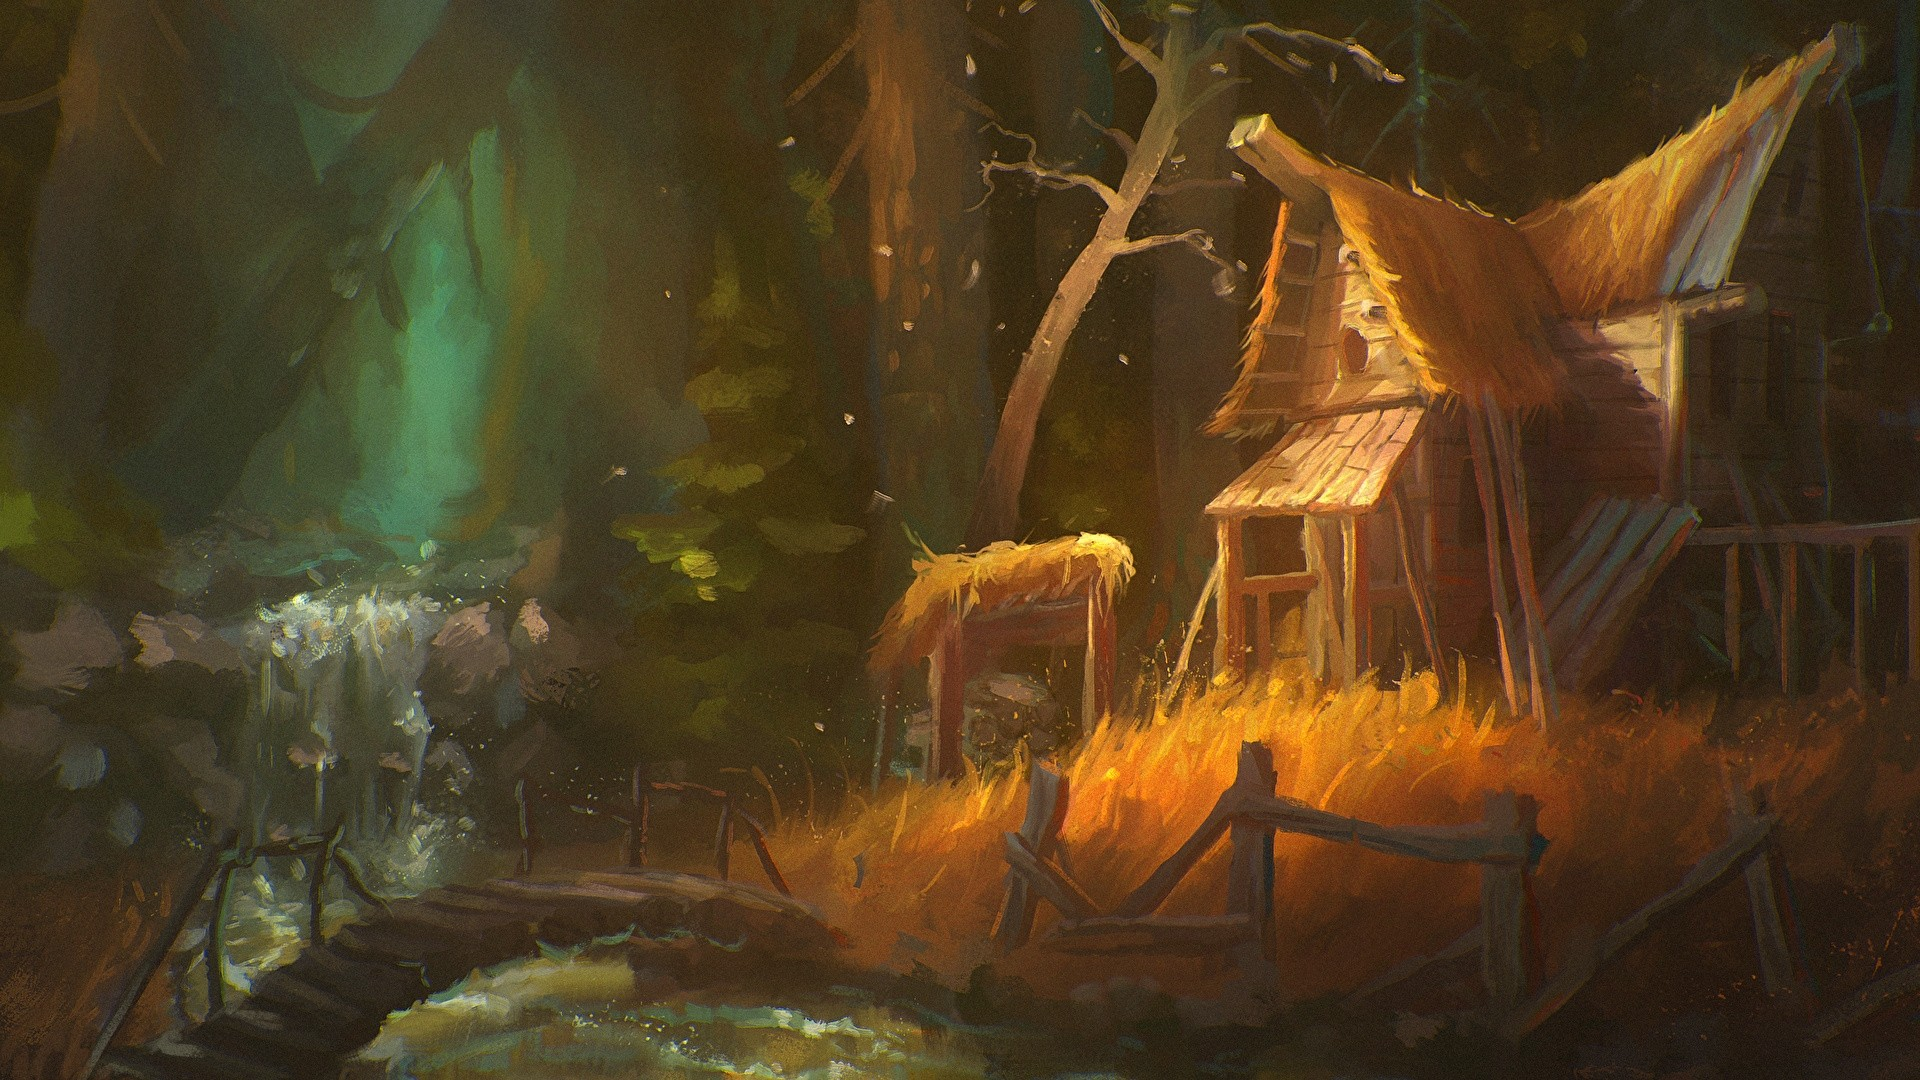 House By The River Art Full HD Wallpaper